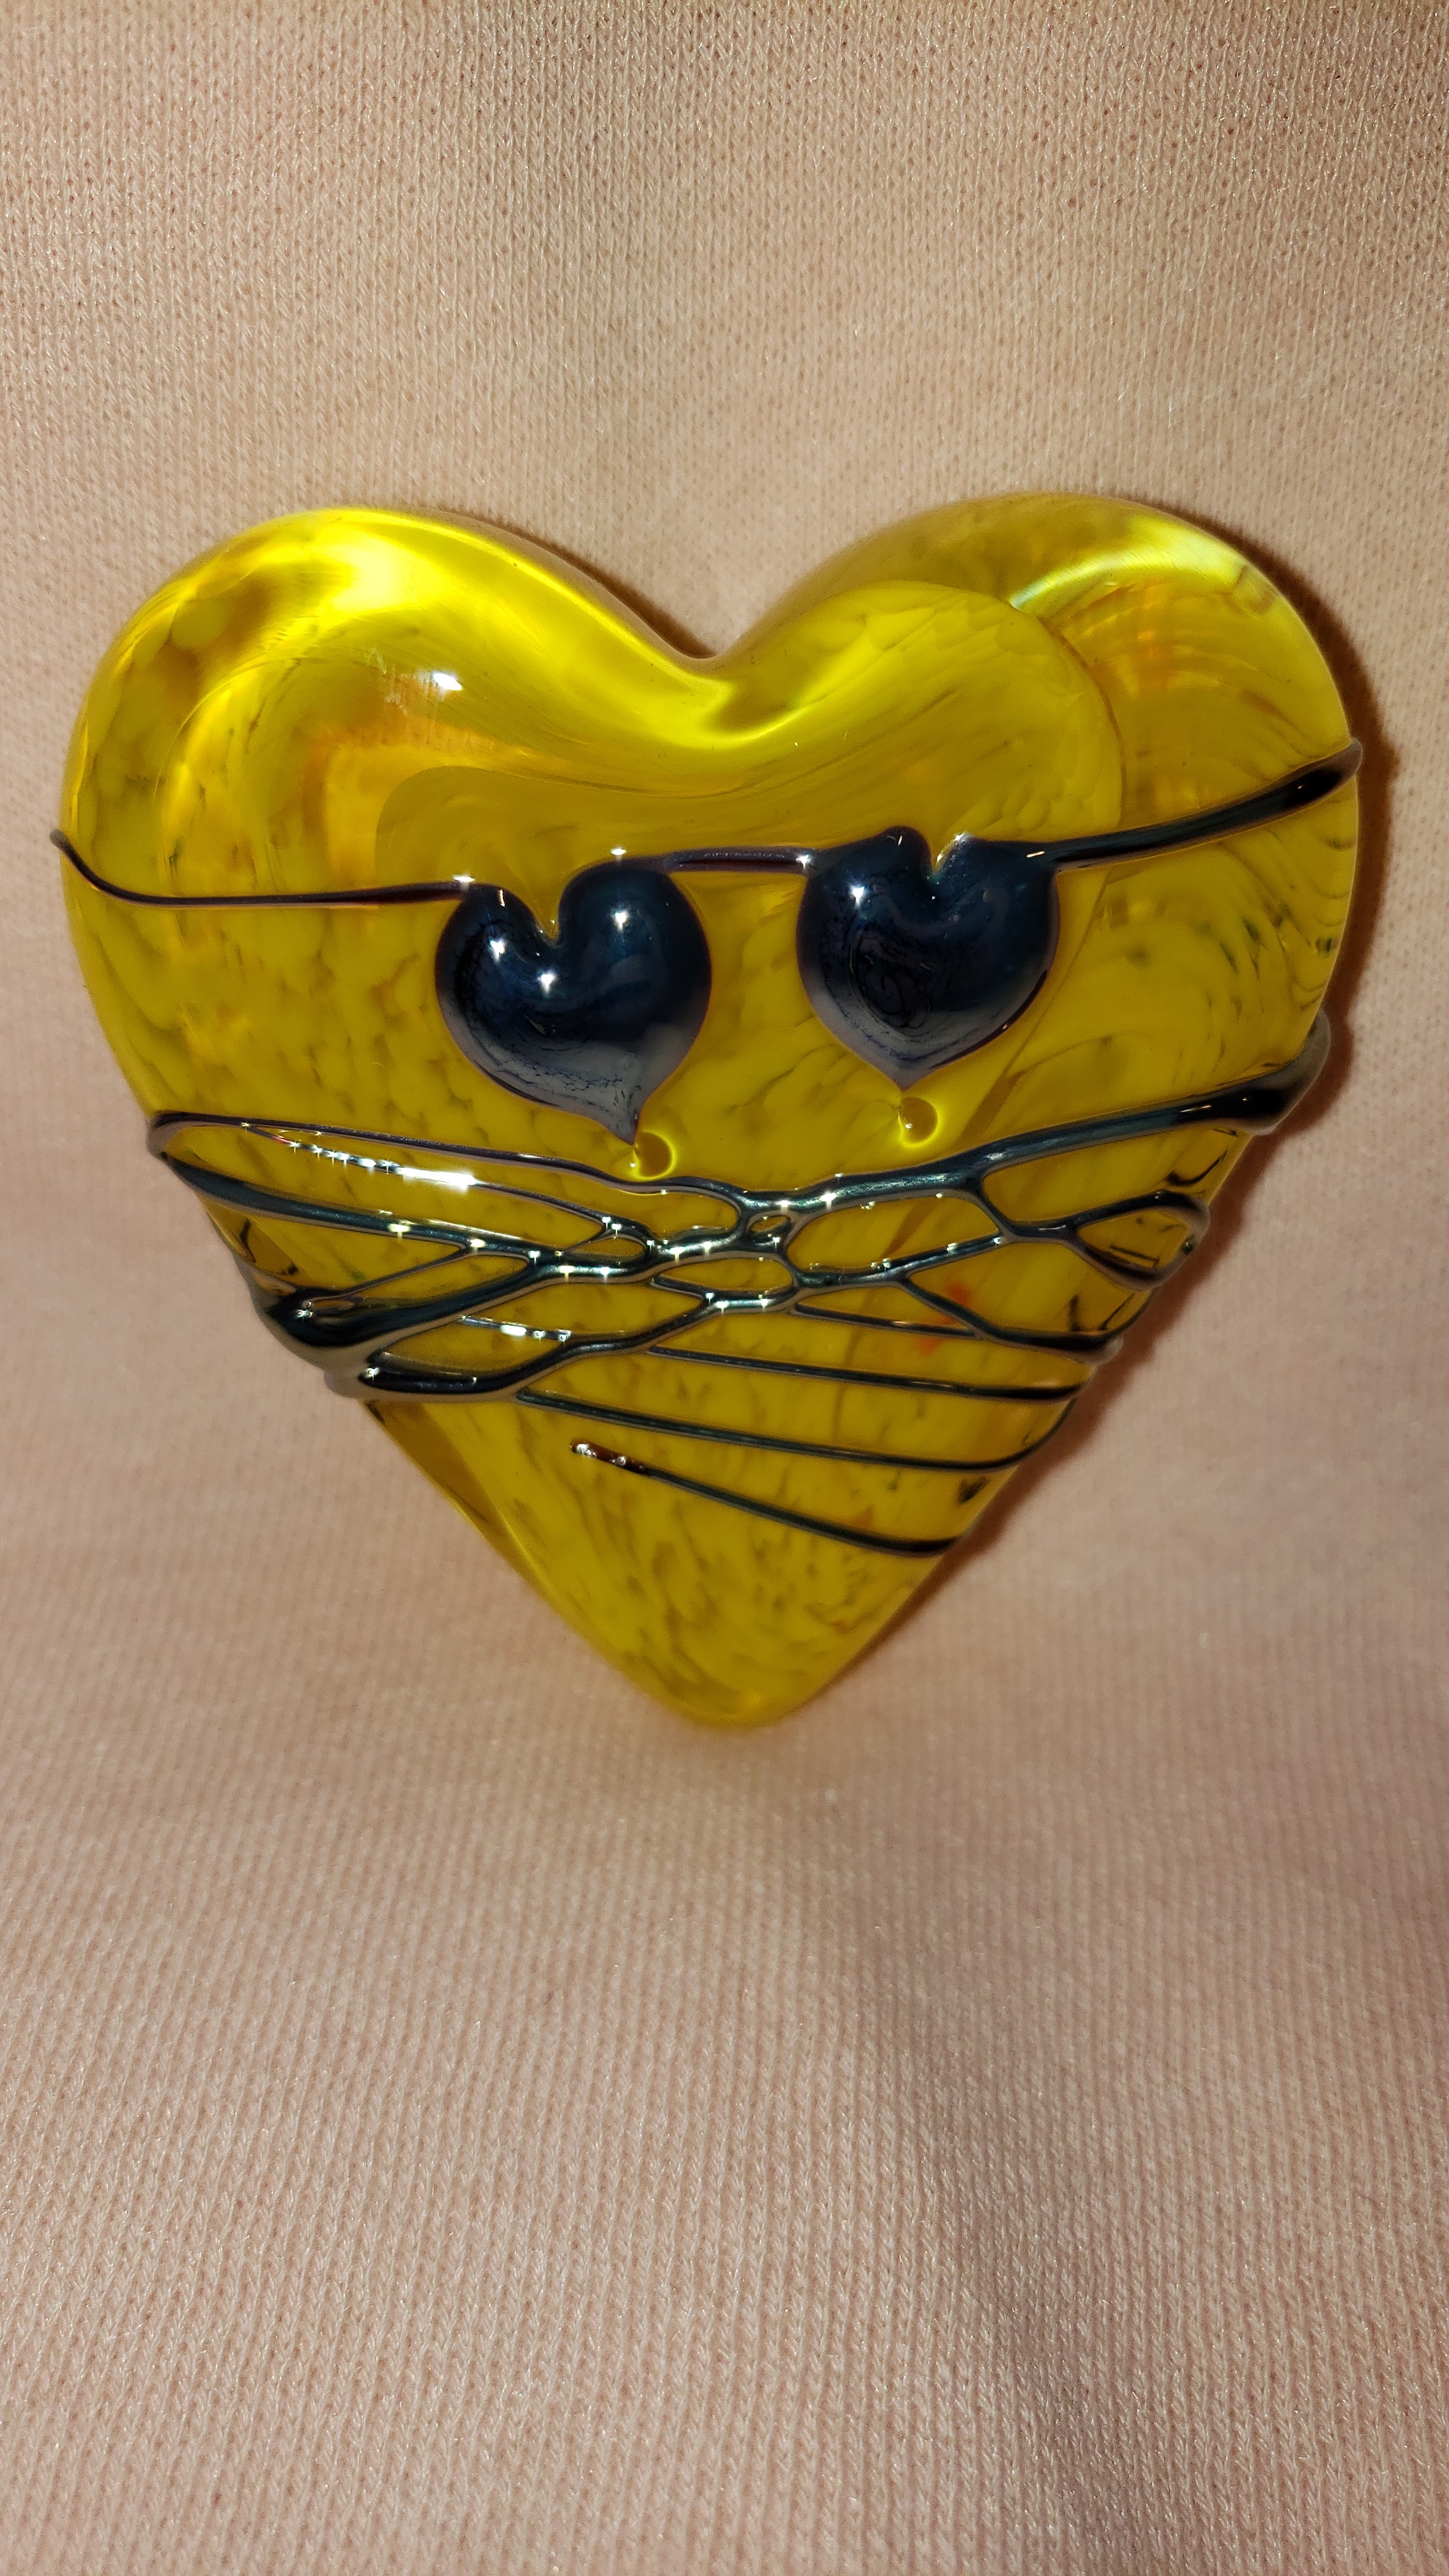 Yellow Glass Heart Paperweight w/ Silver Drizzle & hearts - by David Salazar As Seen In...